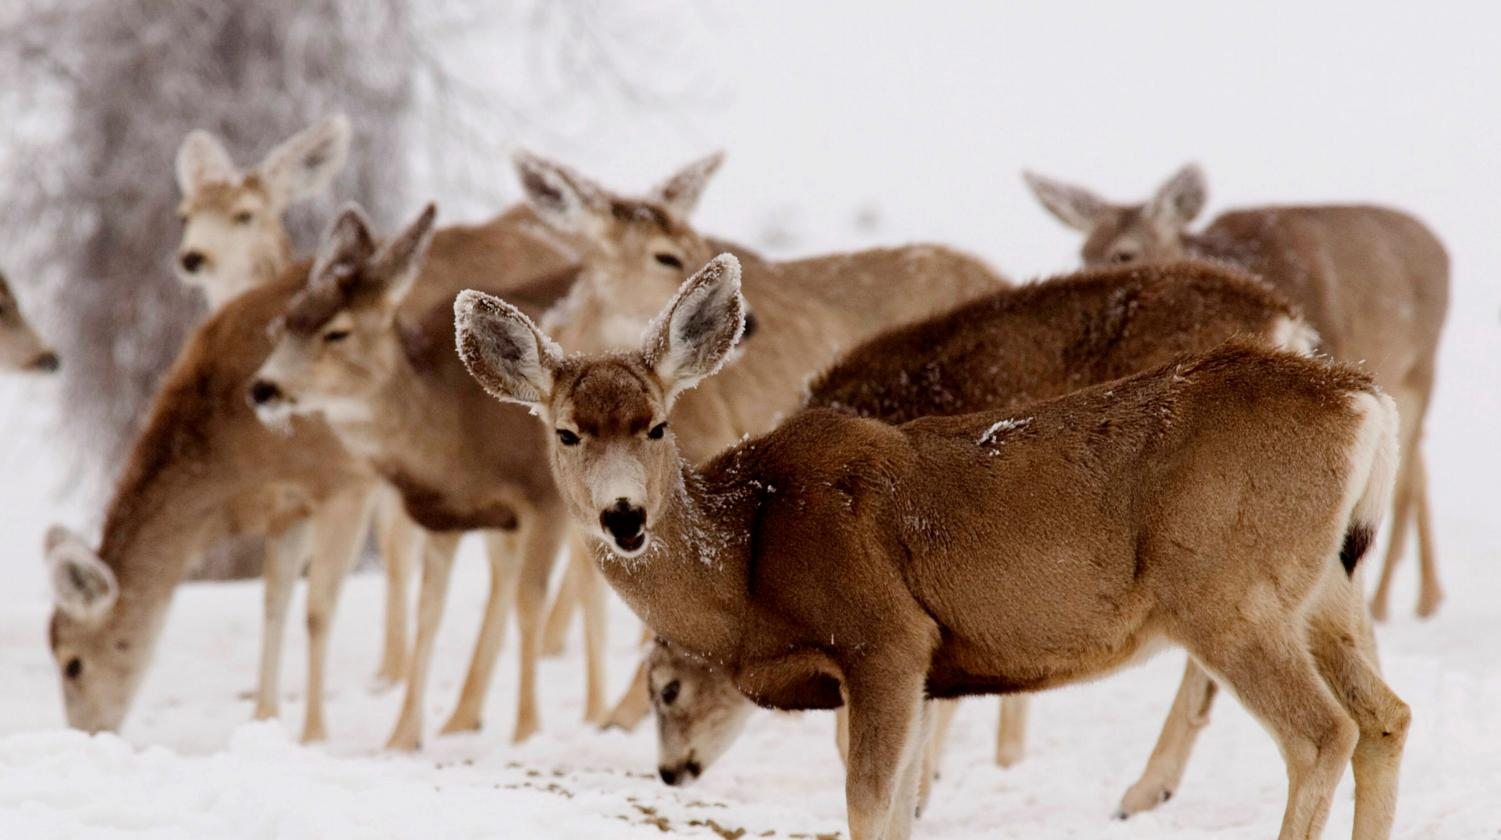 CWD, or chronic wasting disease, slowly spreads throughout the deer population in certain areas of the Unites States.